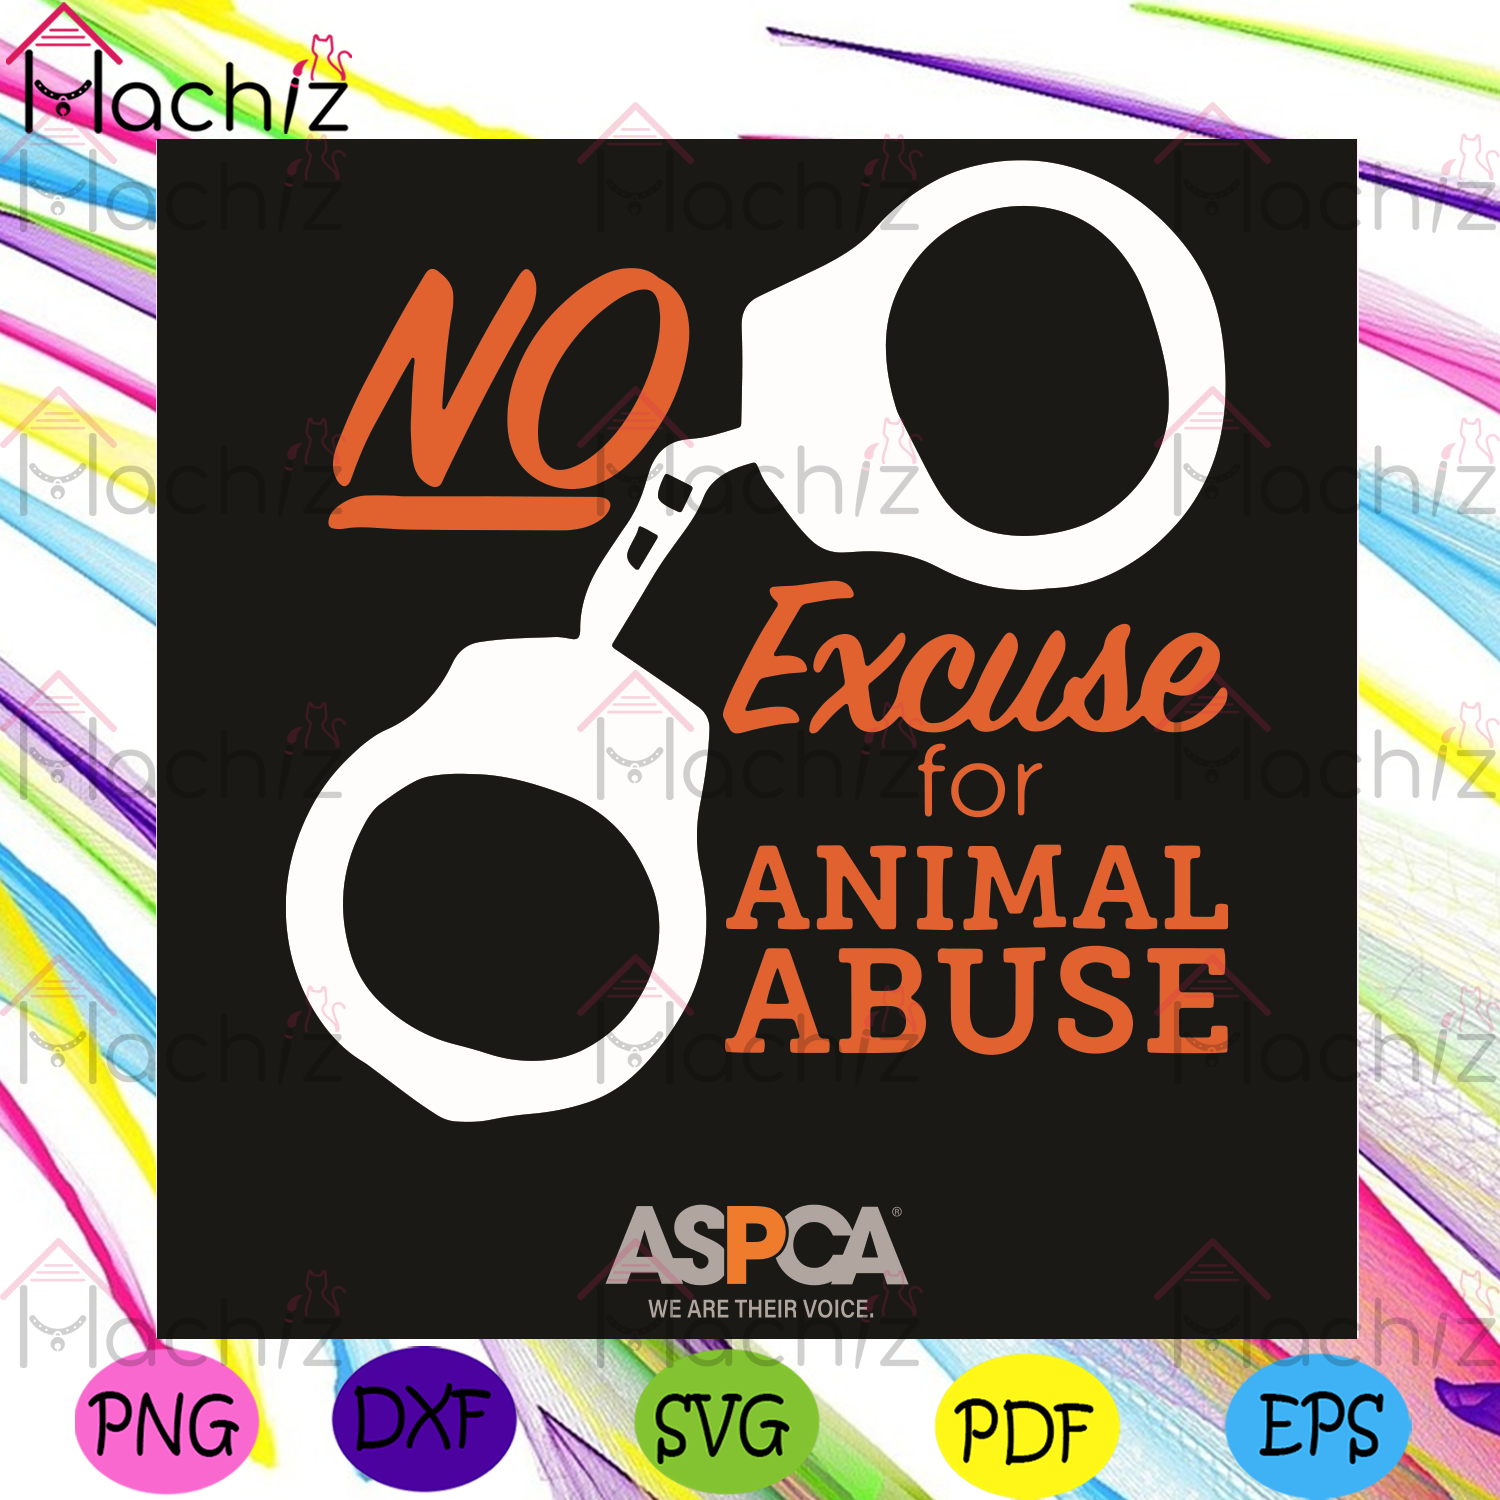 No Excuse For Animal Abuse Svg, Trending Svg, Aspca Svg, Aspca Organization Svg, Aspca Gifts Svg, Animal Svg, Animal Lovers Svg, Protect Animal Svg, Save Animal Svg, Animal Love Svg, Cruelty Of Animal Svg, American Society Svg